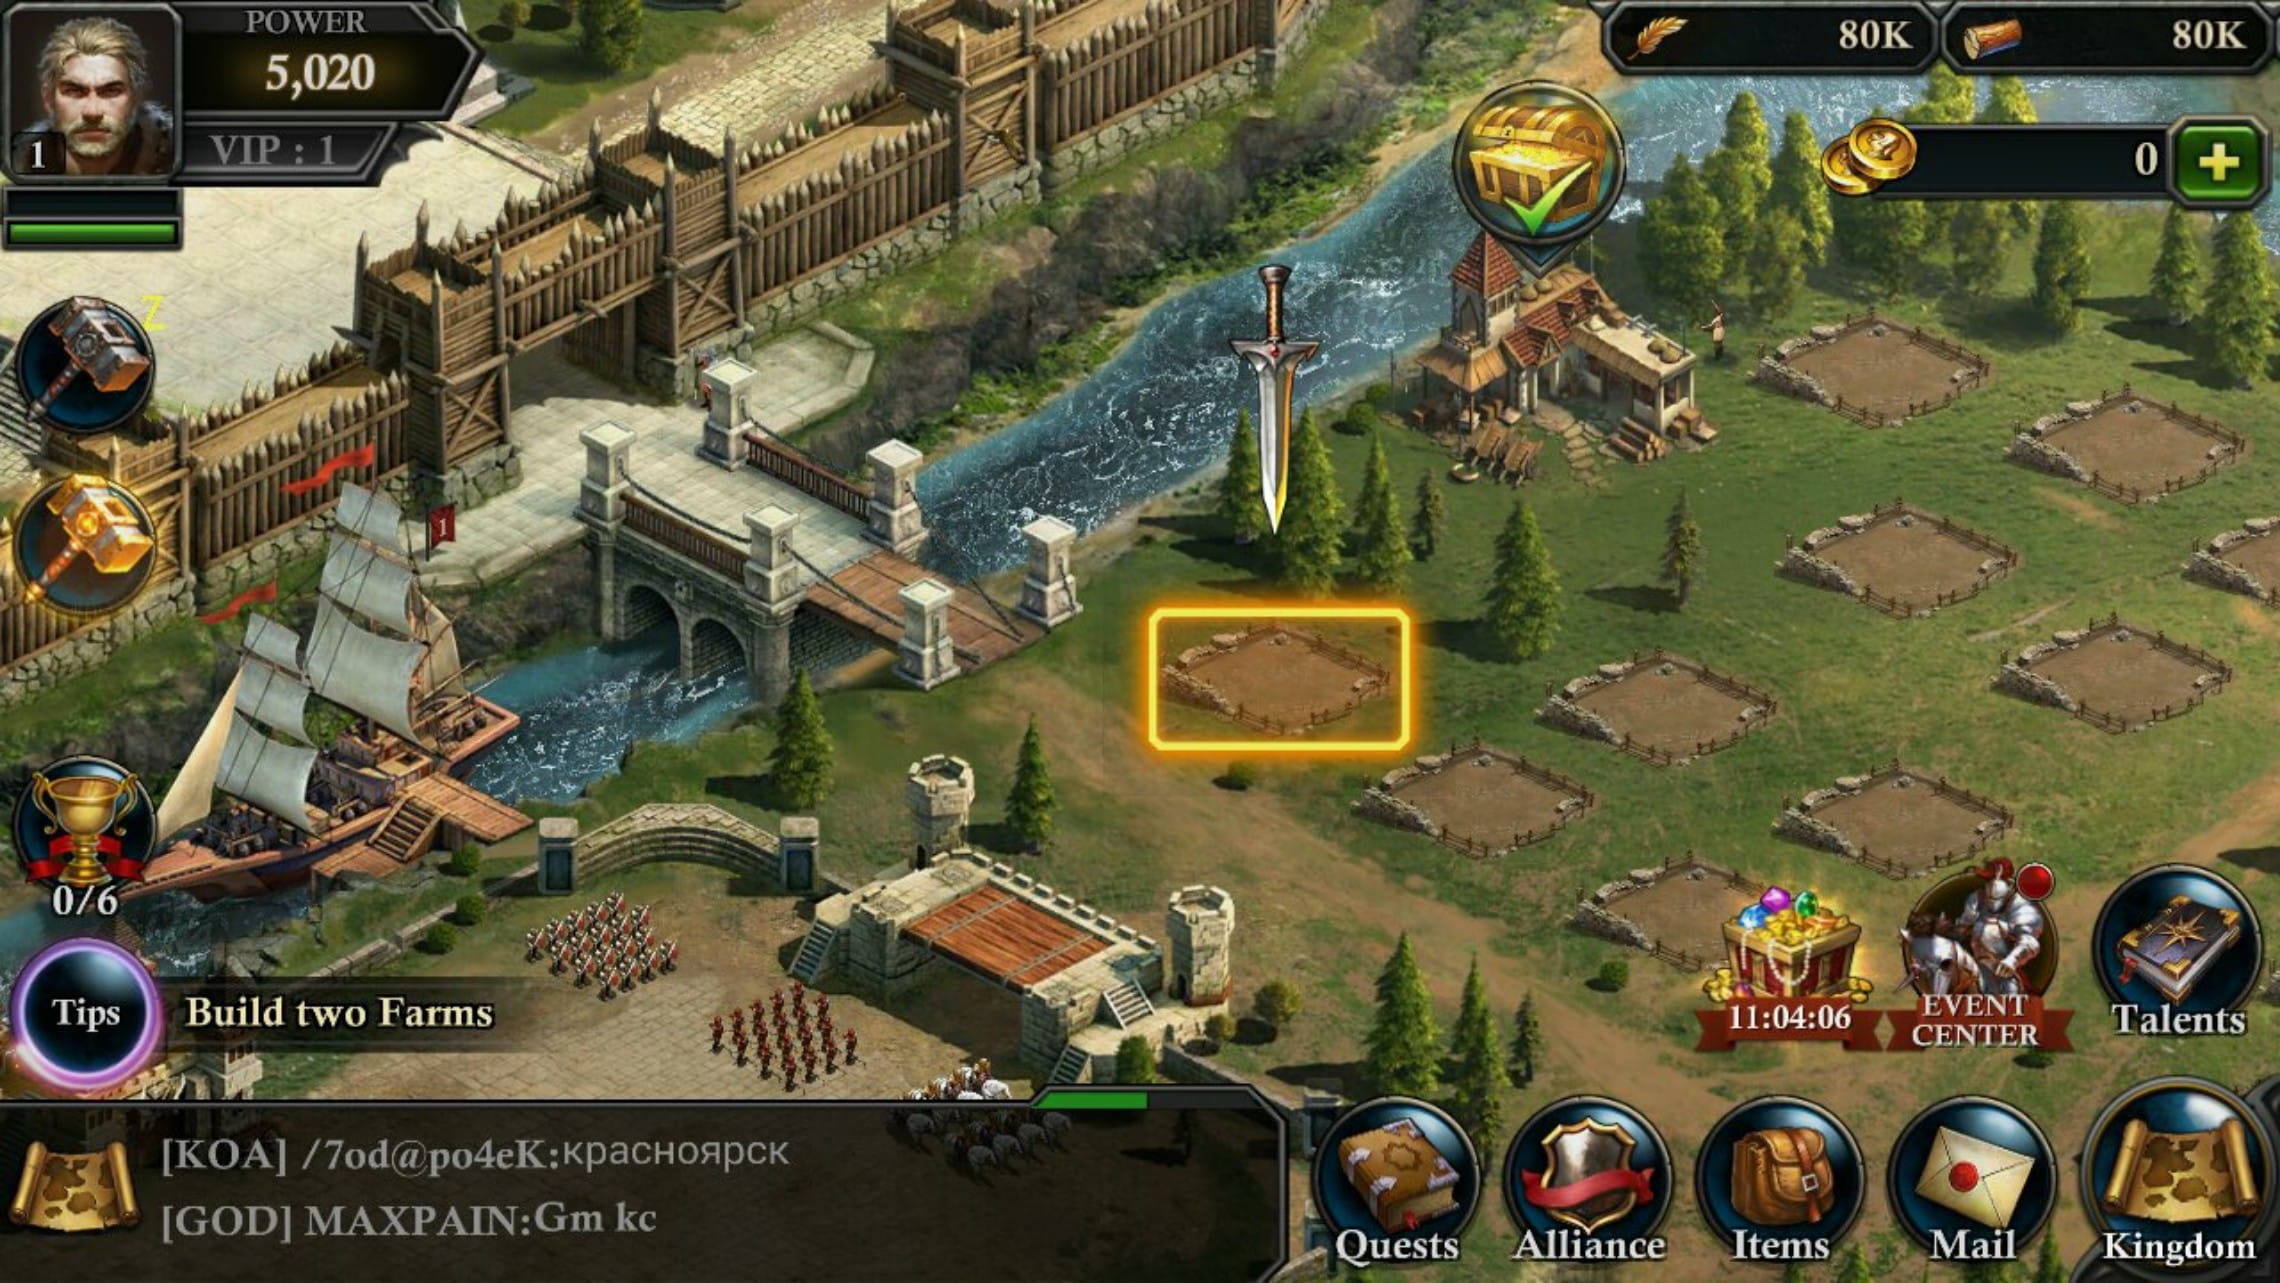 King-of-Avalon-Apk-Mod